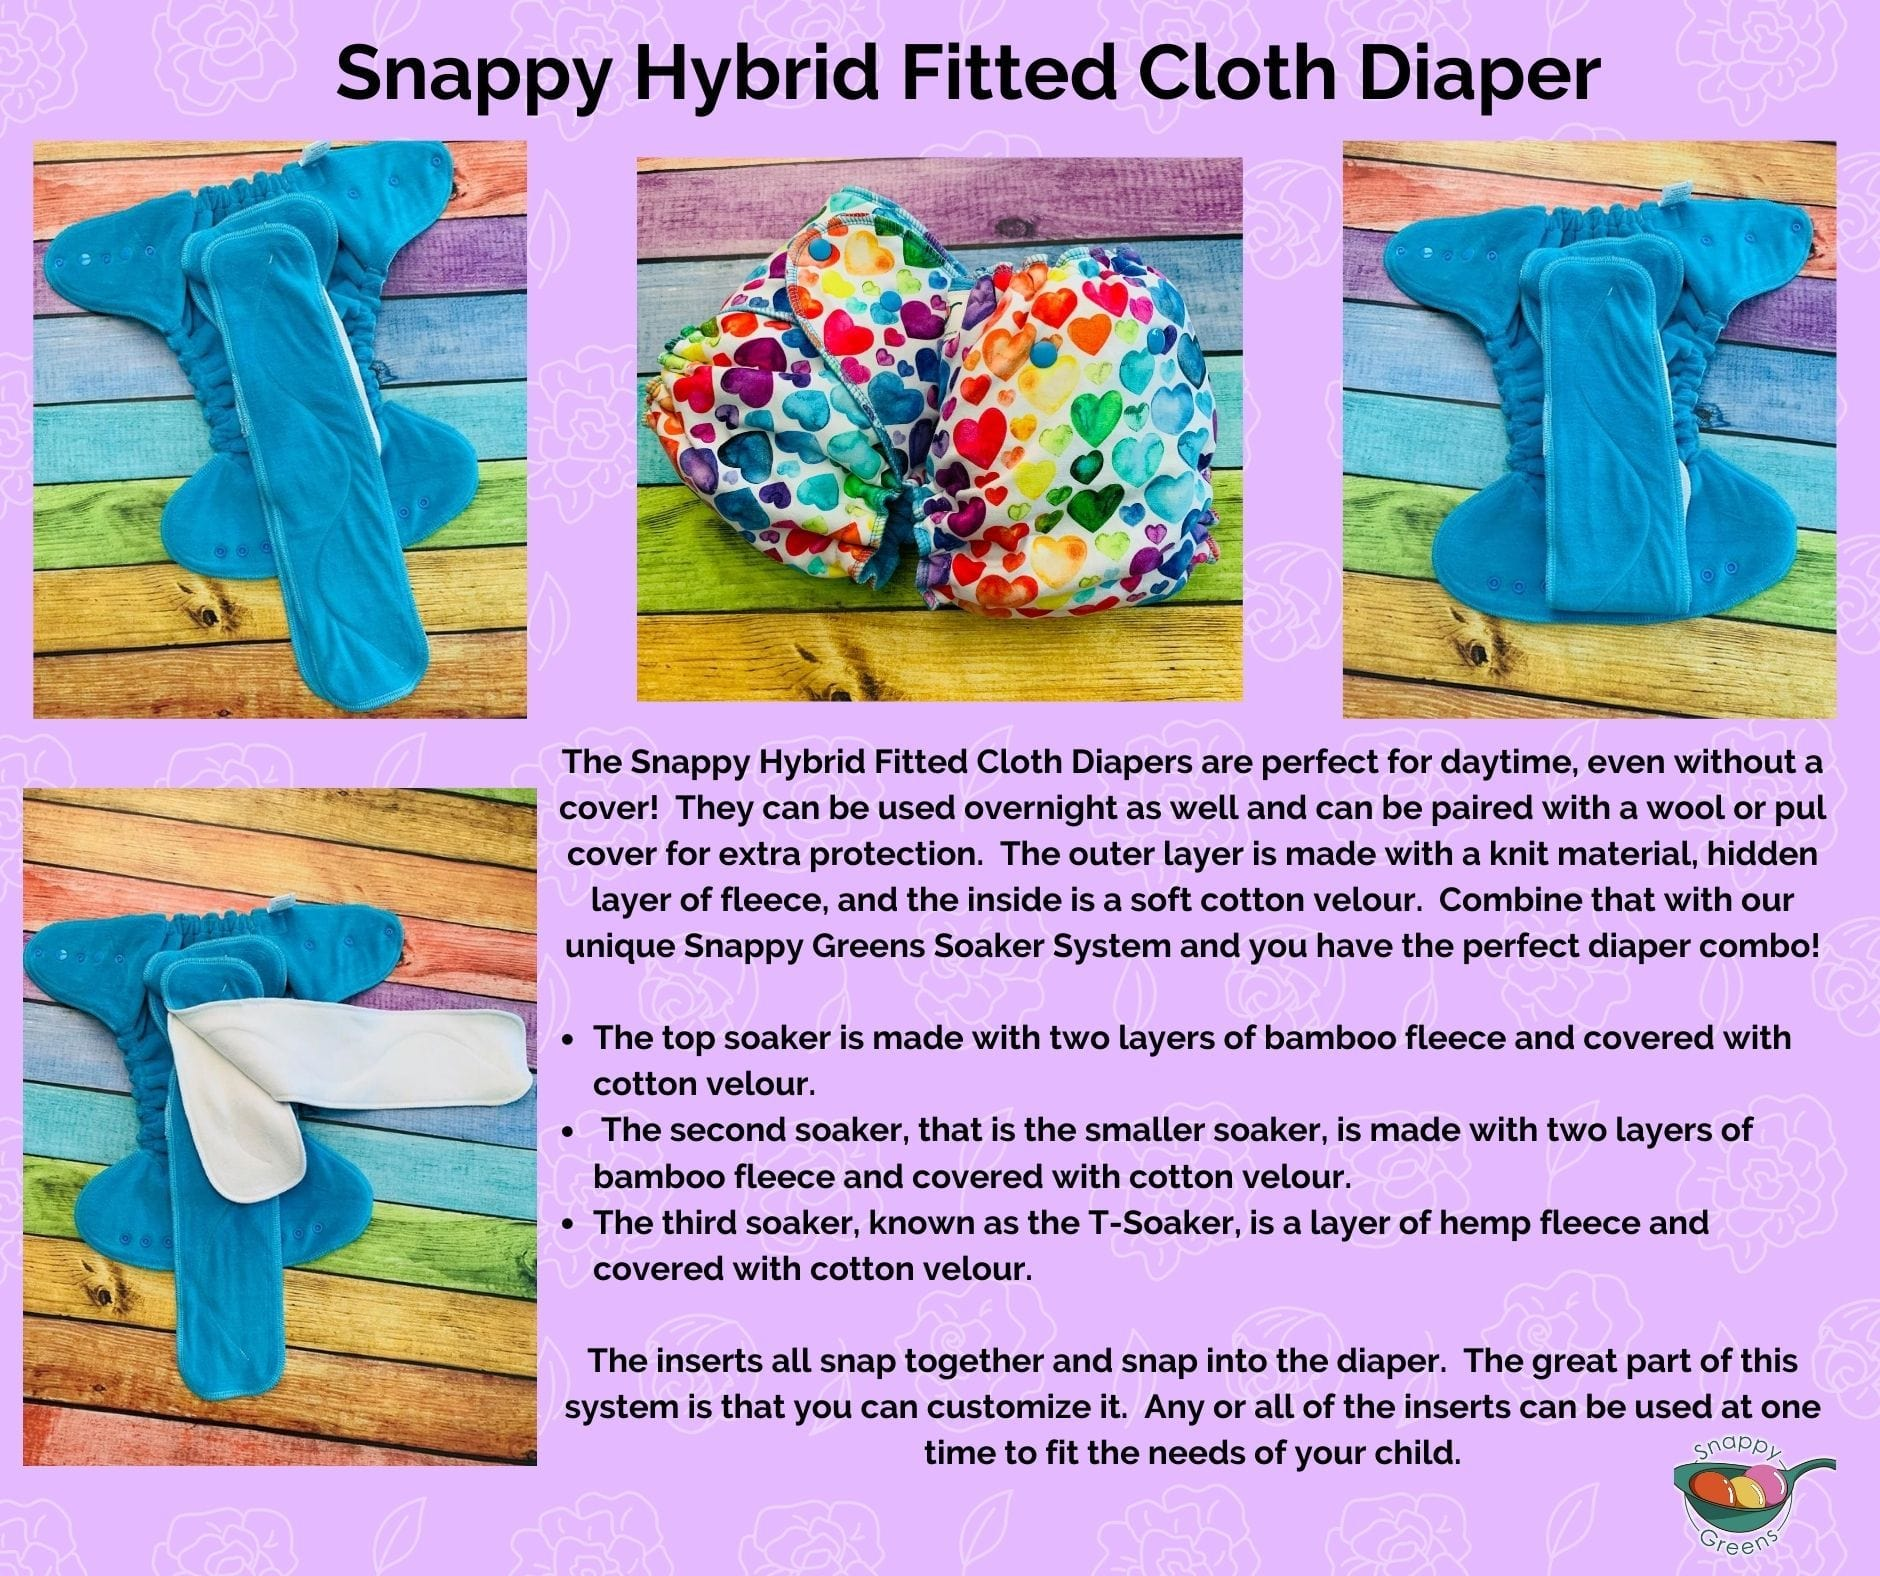 Hybrid Fitted Cloth Diaper -  Part of Your World CL